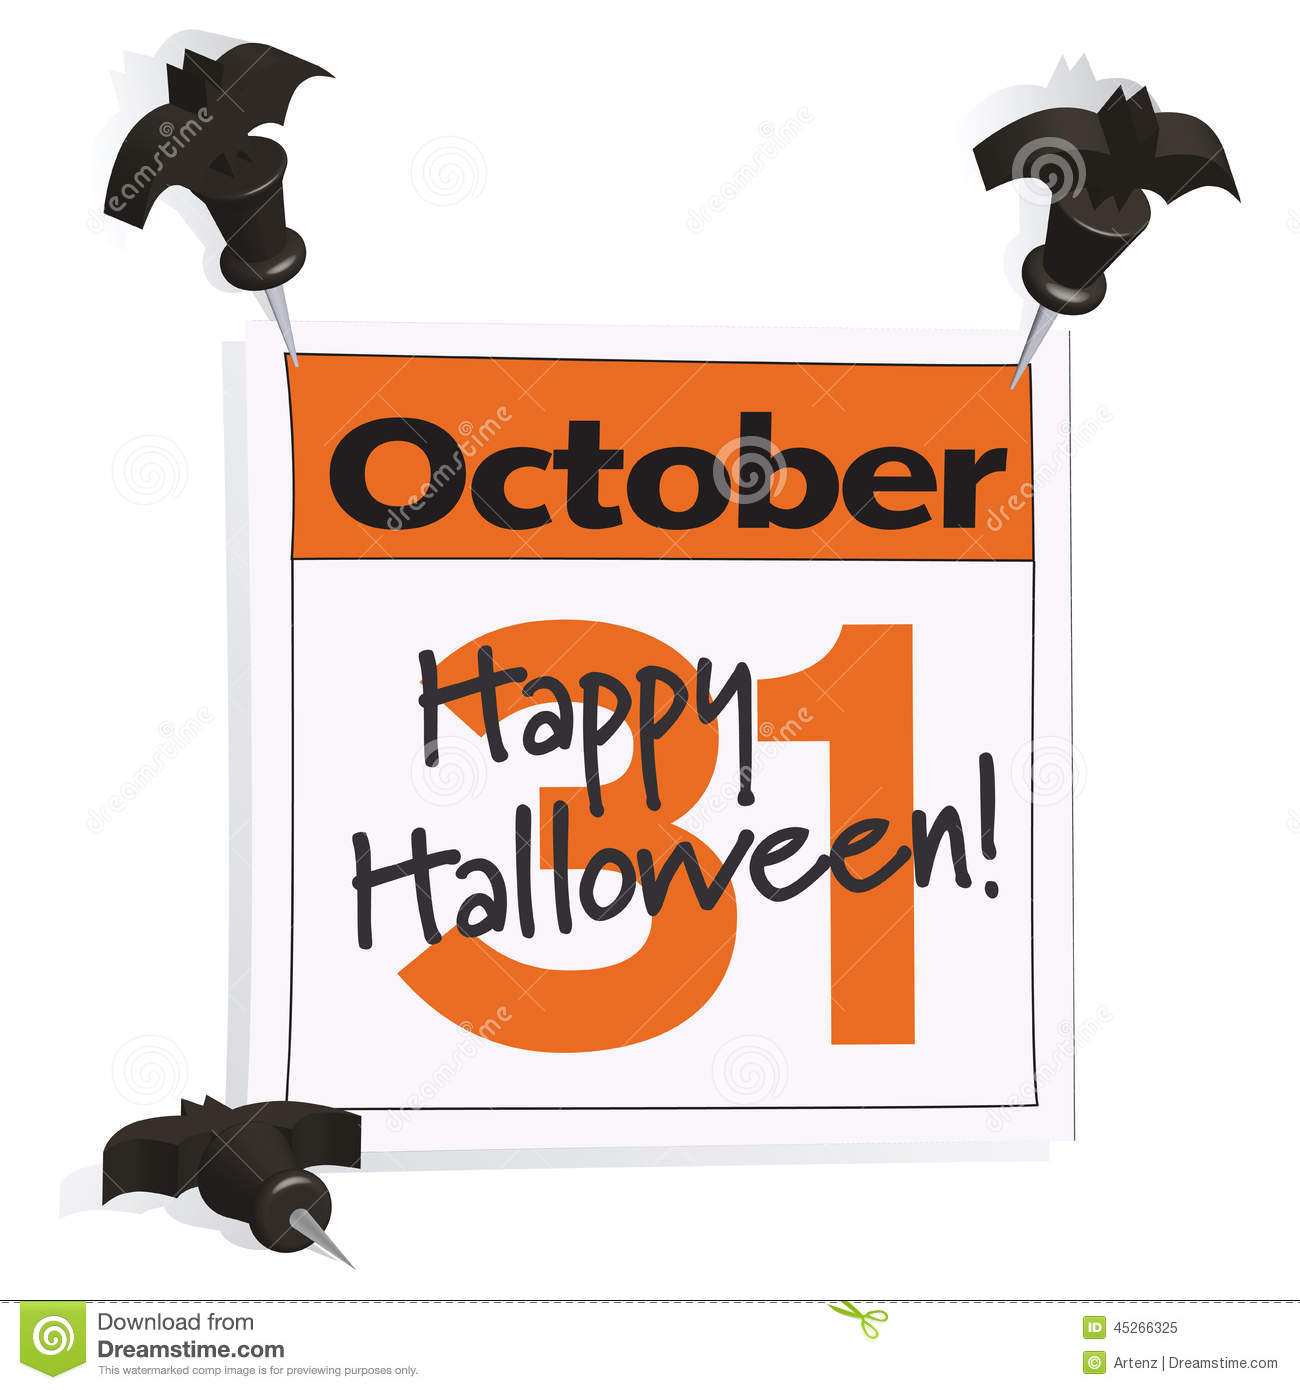 october 31st halloween clip art - Why Is Halloween On The 31st Of October